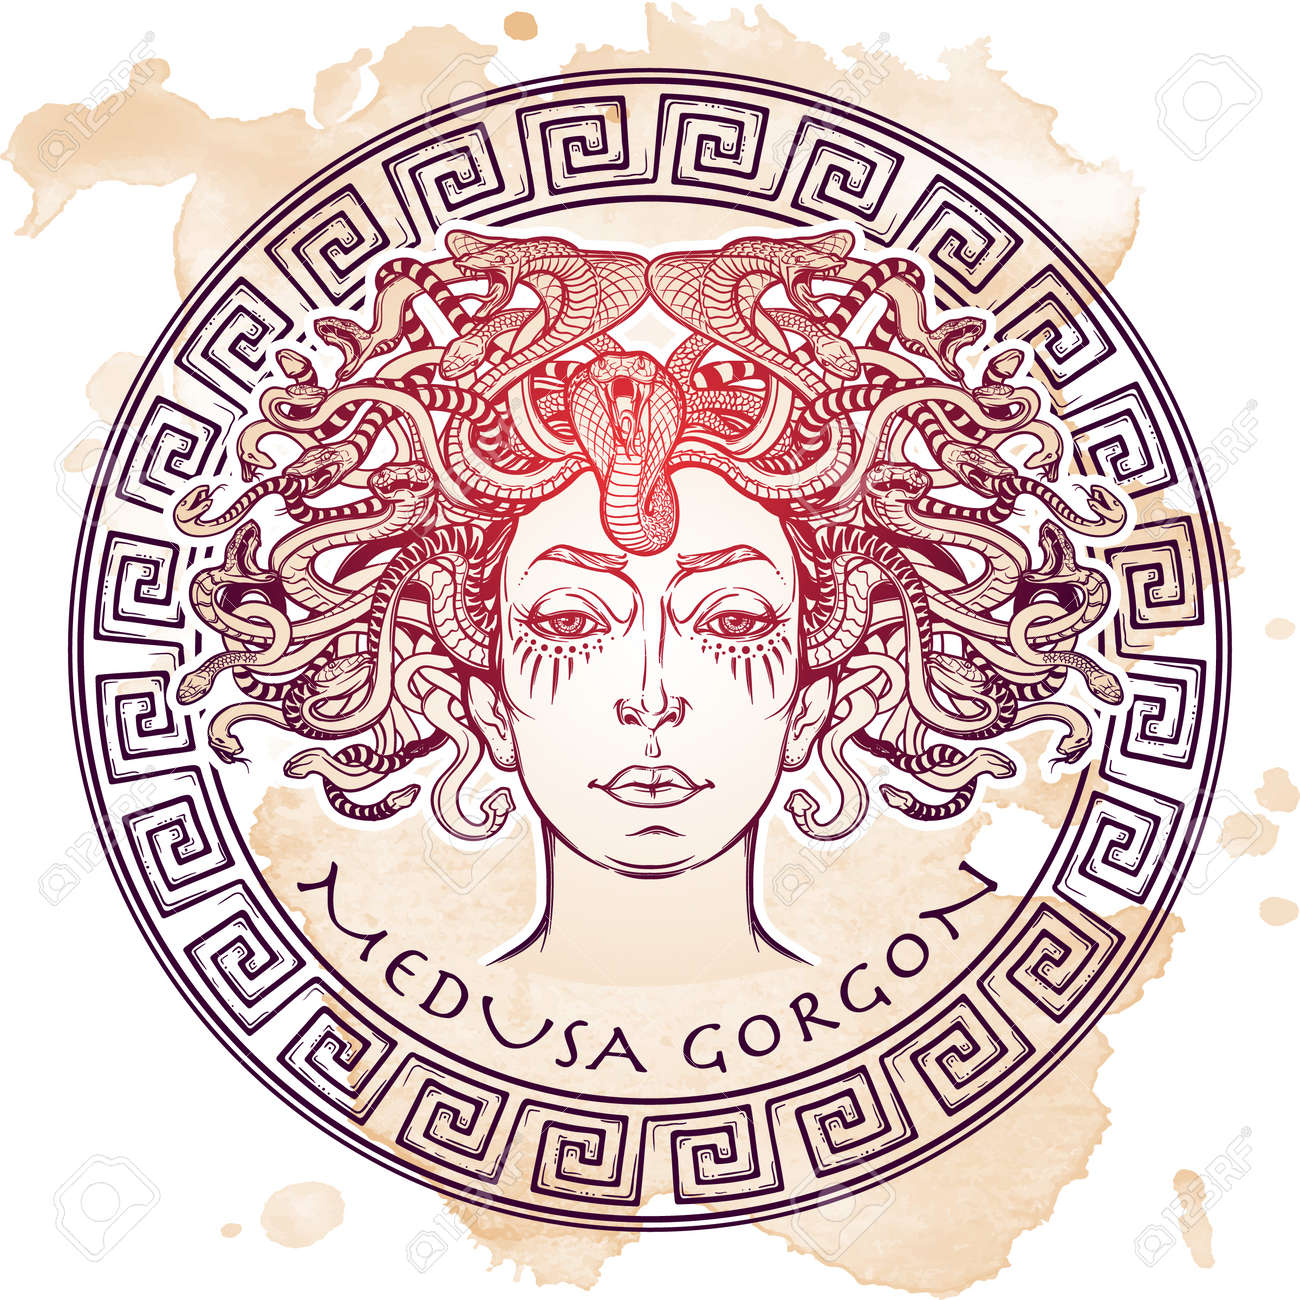 Medusa Gorgon. Ancient Greek mythological creature with face of a woman and snake hair. Legendary beast. Halloween concept. Hand drawn sketch on grunge background. Isolated vector illustration. - 60530923